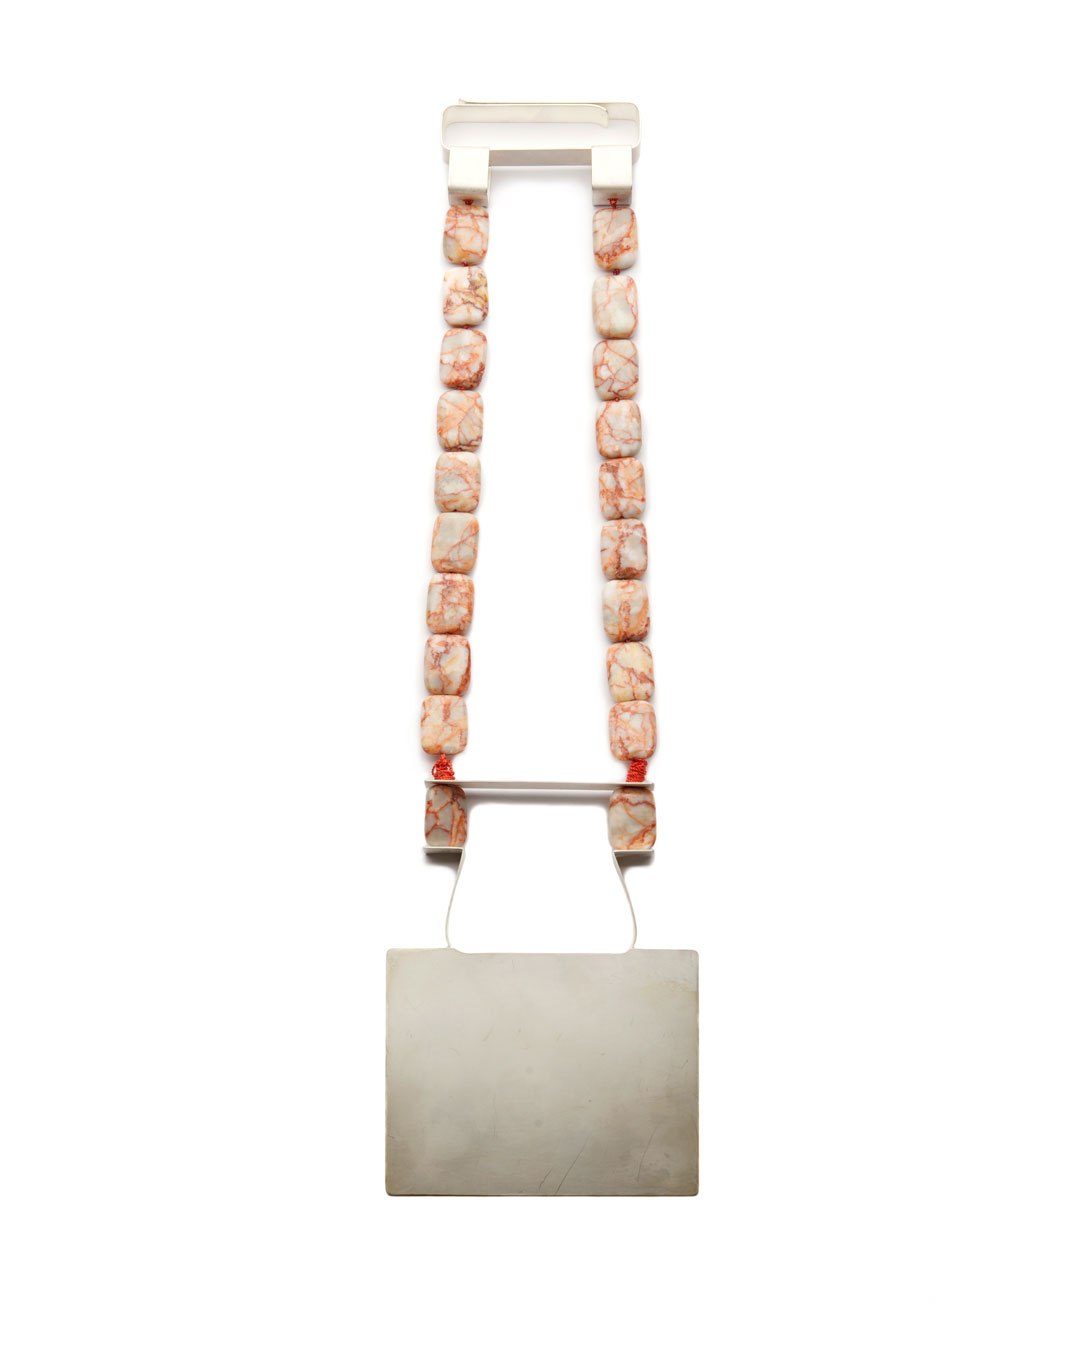 Ute Eitzenhöfer, untitled, 2014, necklace; silver, jasper, 350 x 100 x 10 mm, €2250